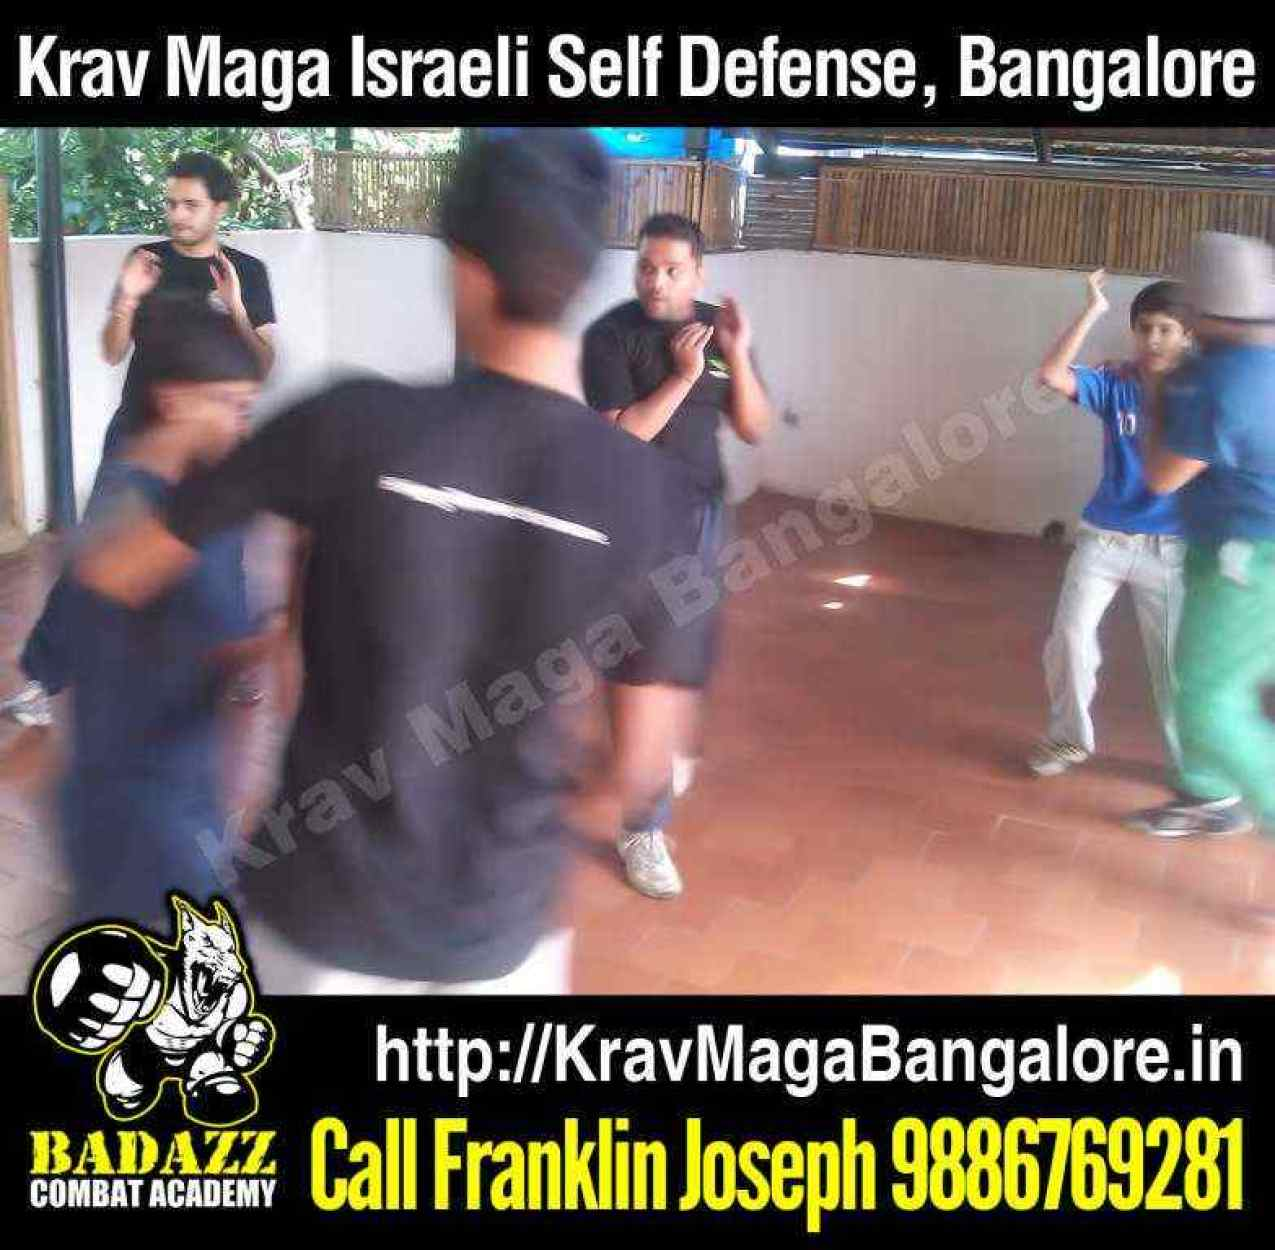 Krav-Maga Photo Oct 20 (33)